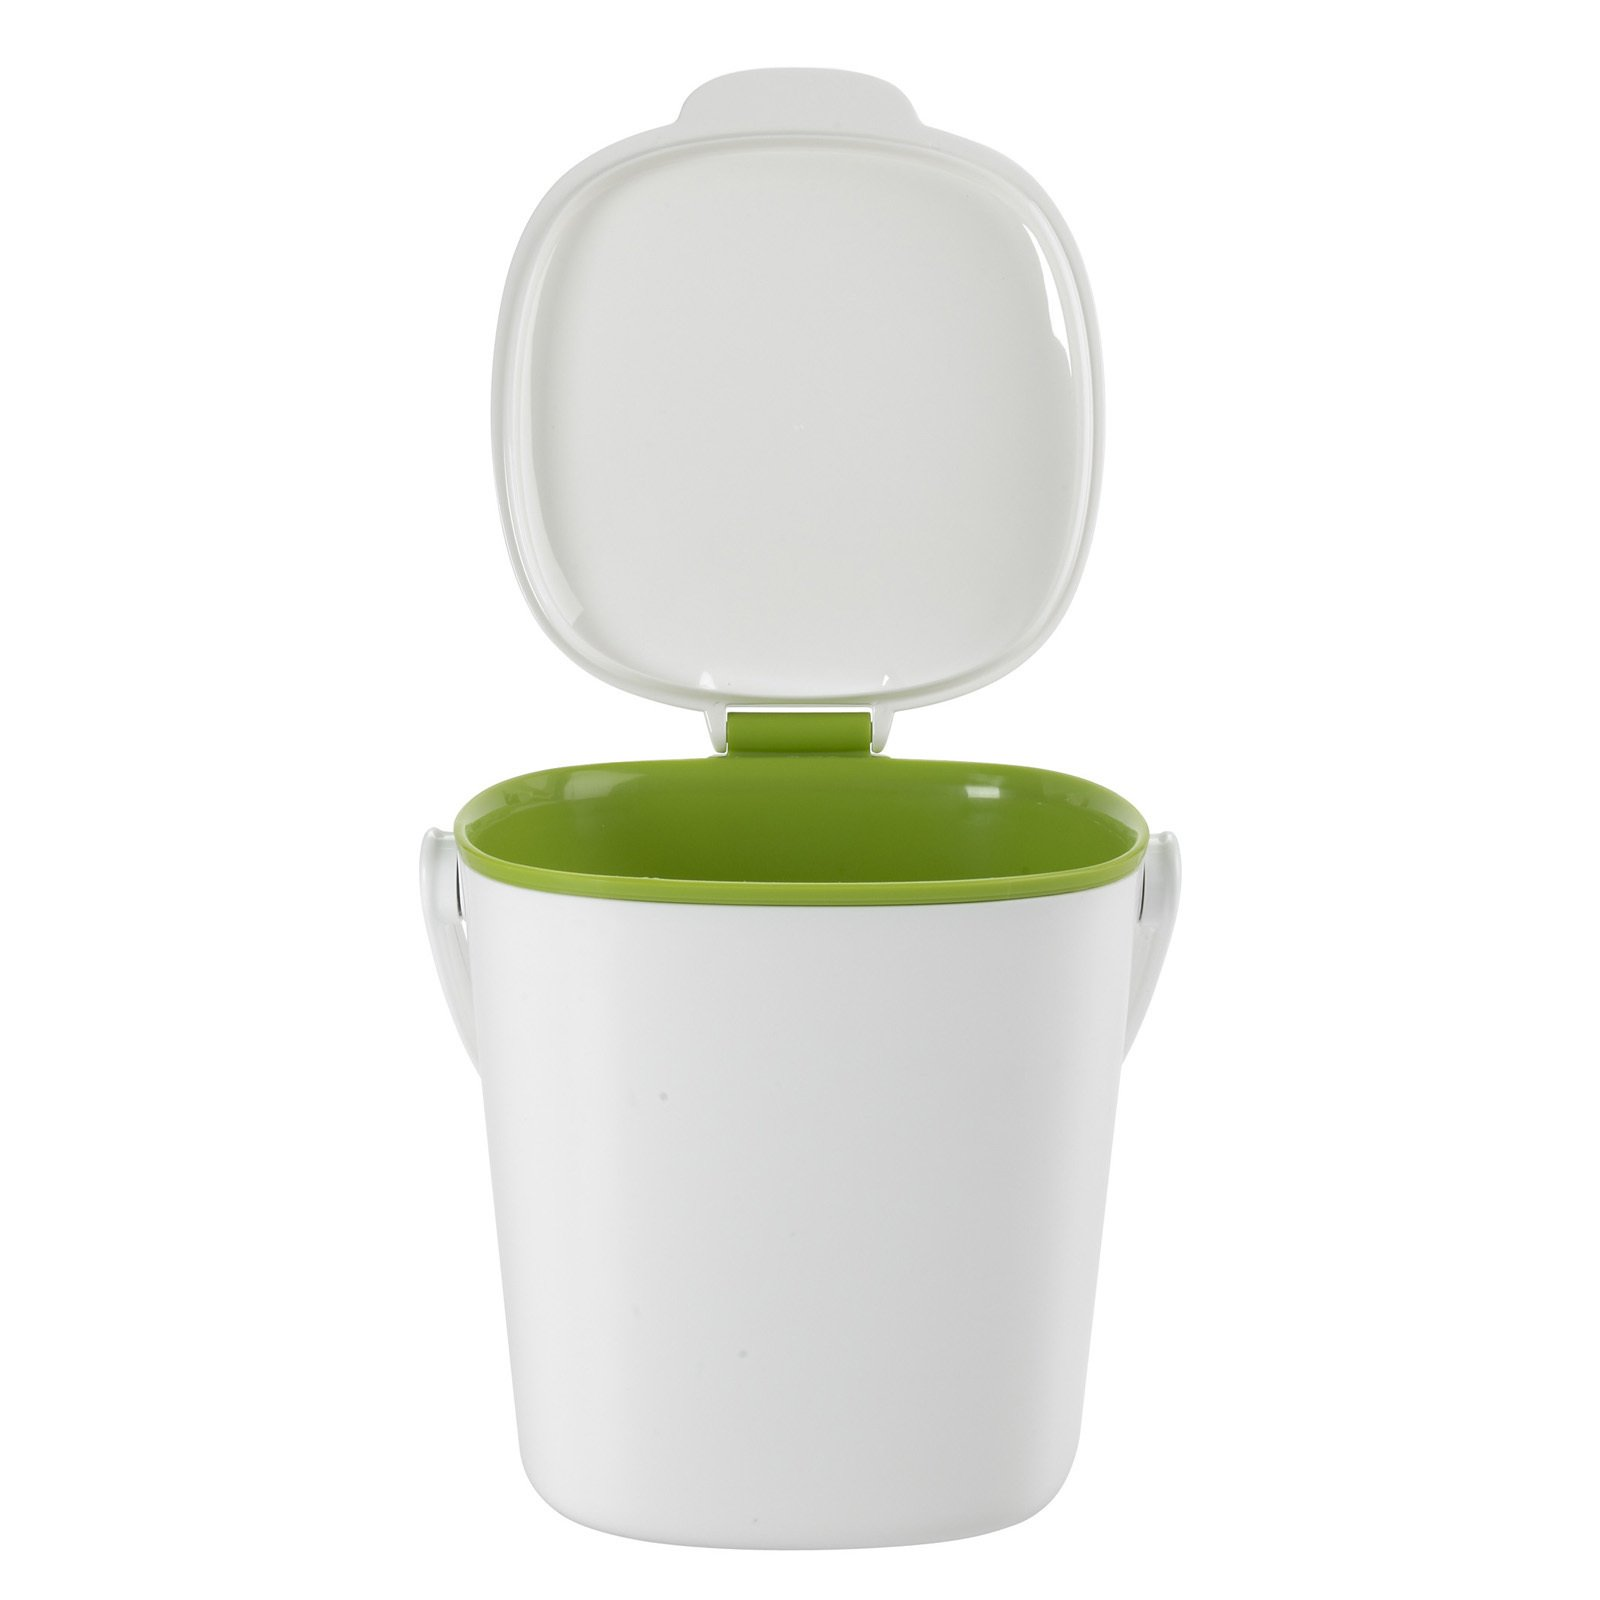 There are so many compost bin designs out there but what makes the OXO Compost Bin great is its simplicity. The bin is an approximately eight-inch cube and weighs just 1.21 pounds. The lid stands open when you're filling it and then removes with a twist for easy emptying and cleaning.  New from OXO by Miyoko Ohtake